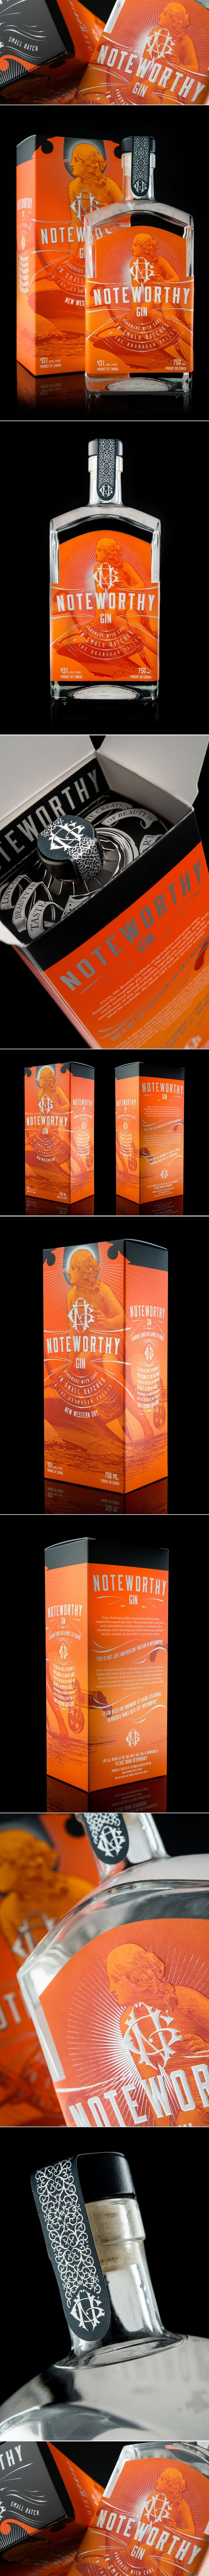 Noteworthy Gin — The Dieline | Packaging & Branding Design & Innovation News